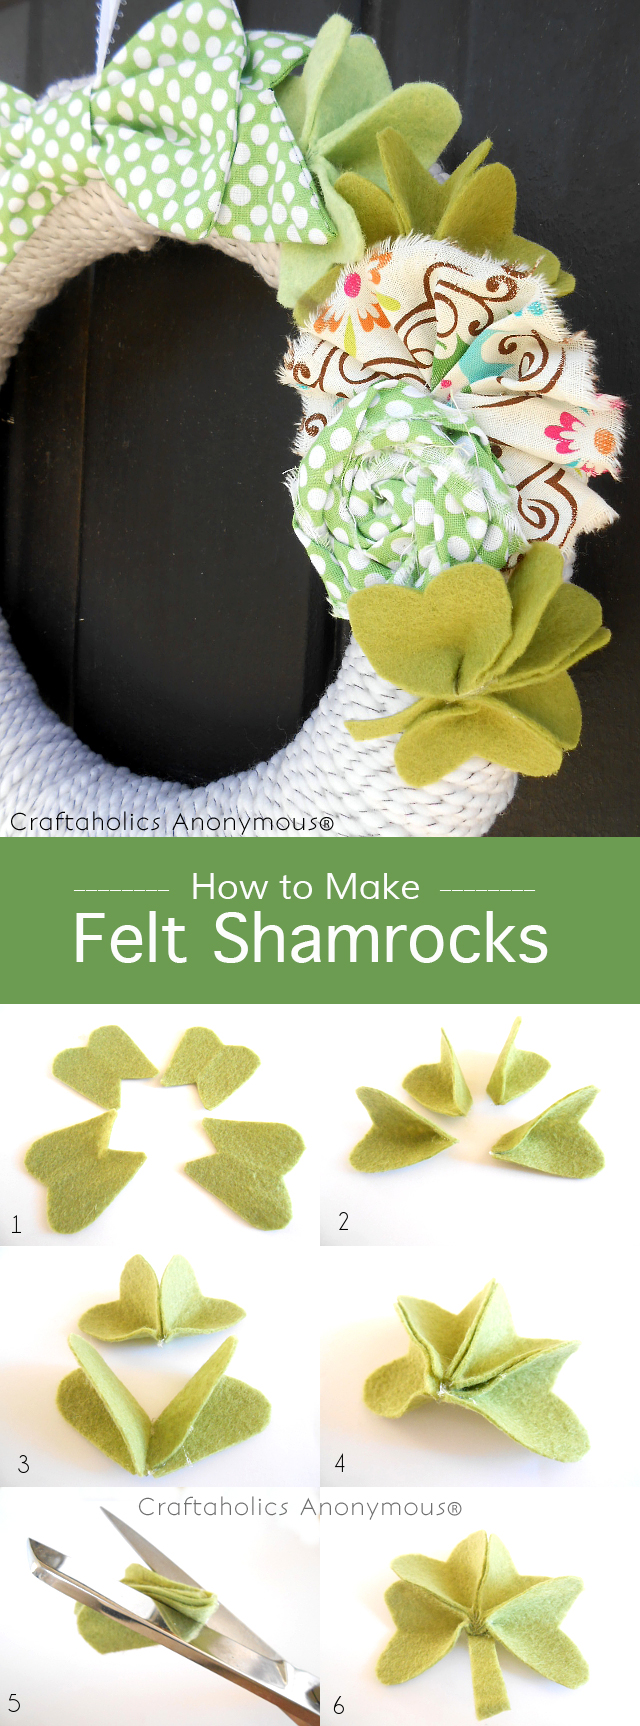 How to Make Felt Shamrocks + DIY St. Patrick's Day wreath